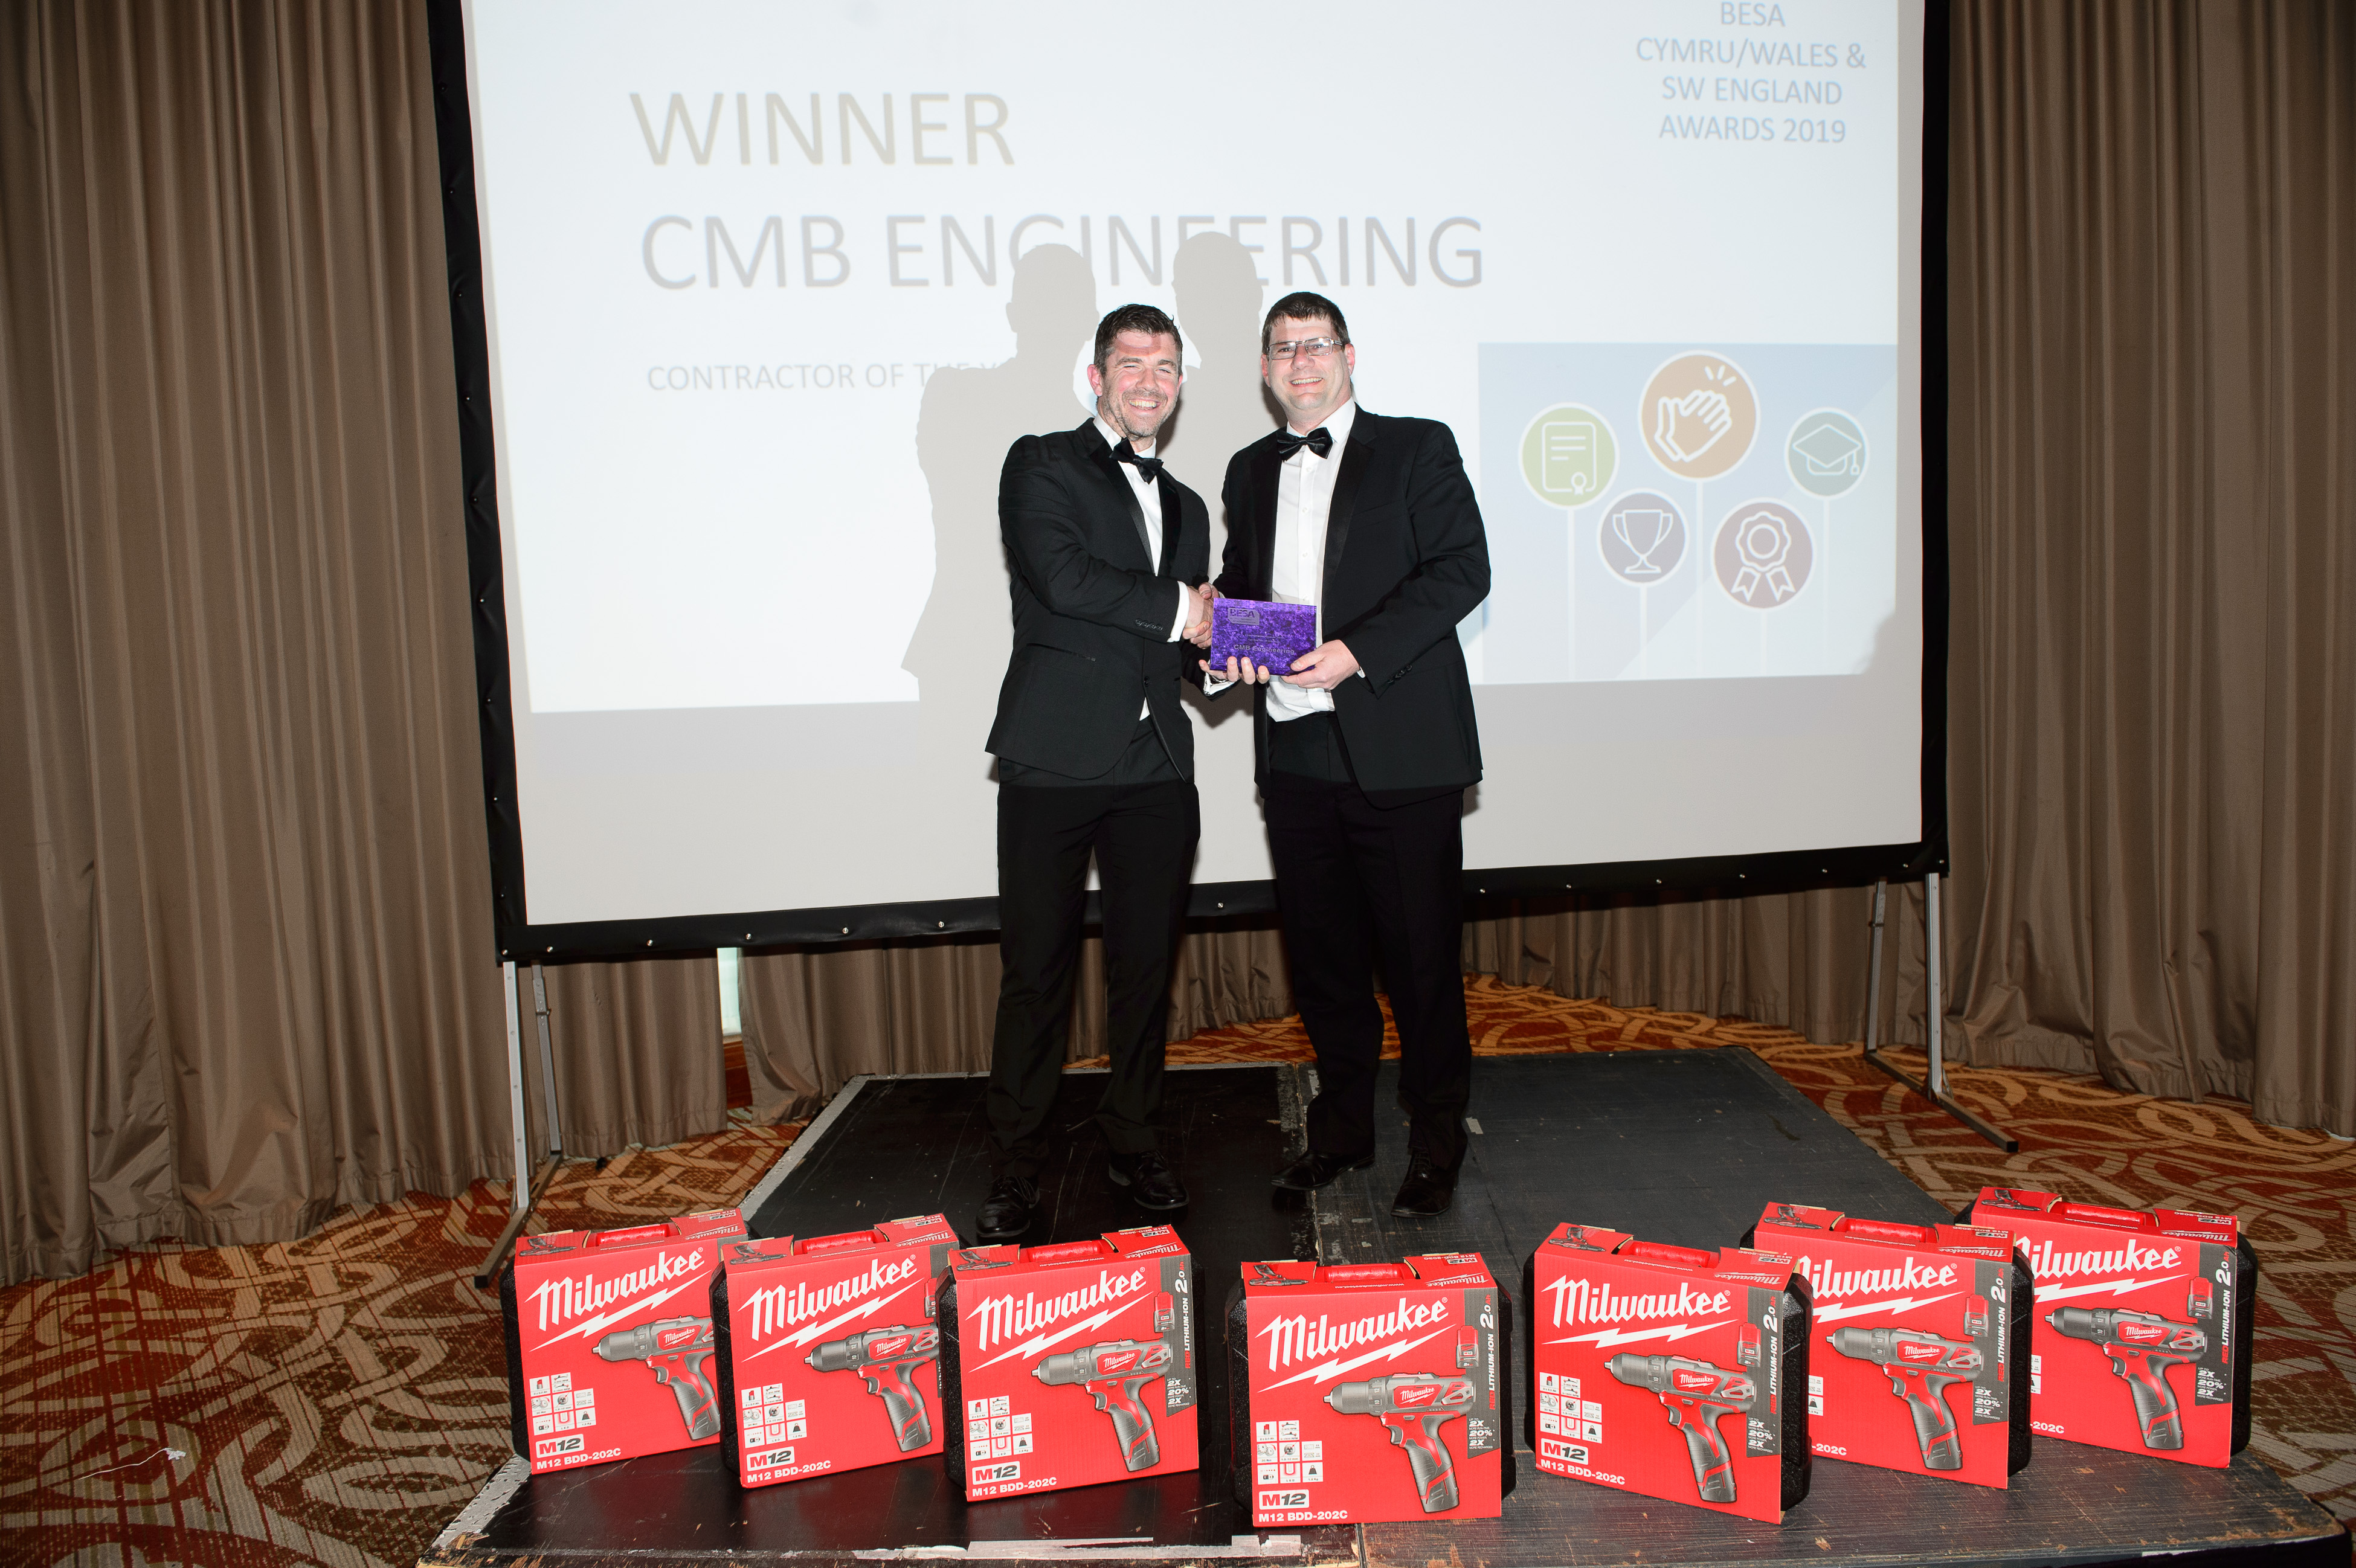 CMB Engineering, Contractor of the Year